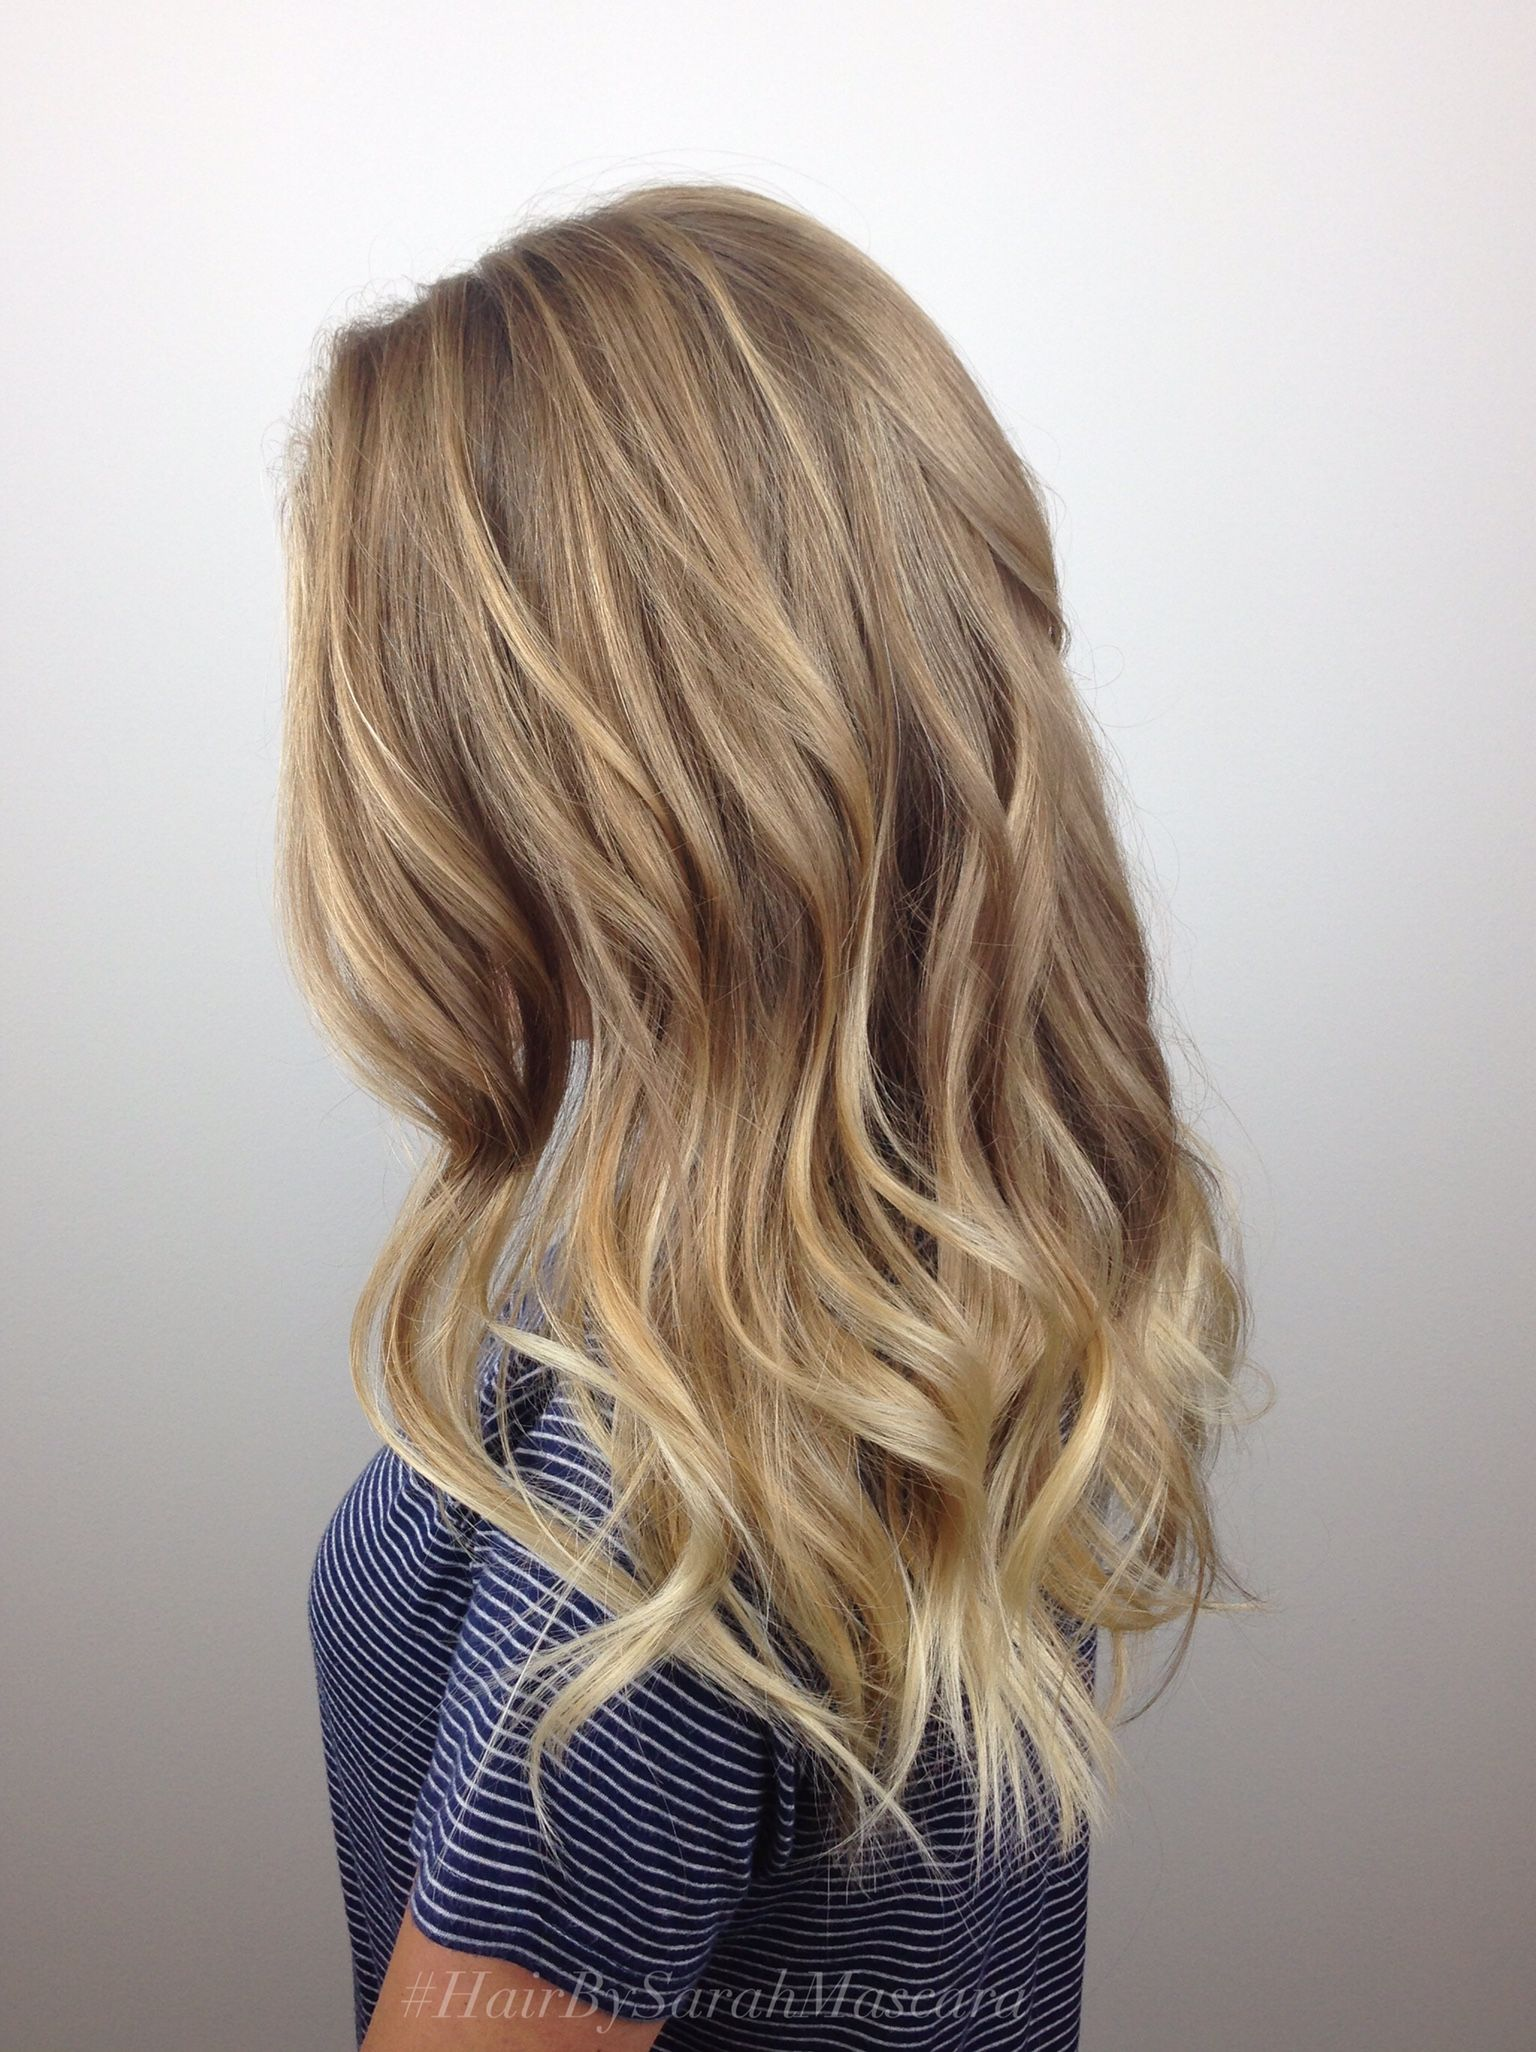 sunkissed highlights hair pinterest dunkelblonde haare dunkelblondes haar mit highlights. Black Bedroom Furniture Sets. Home Design Ideas